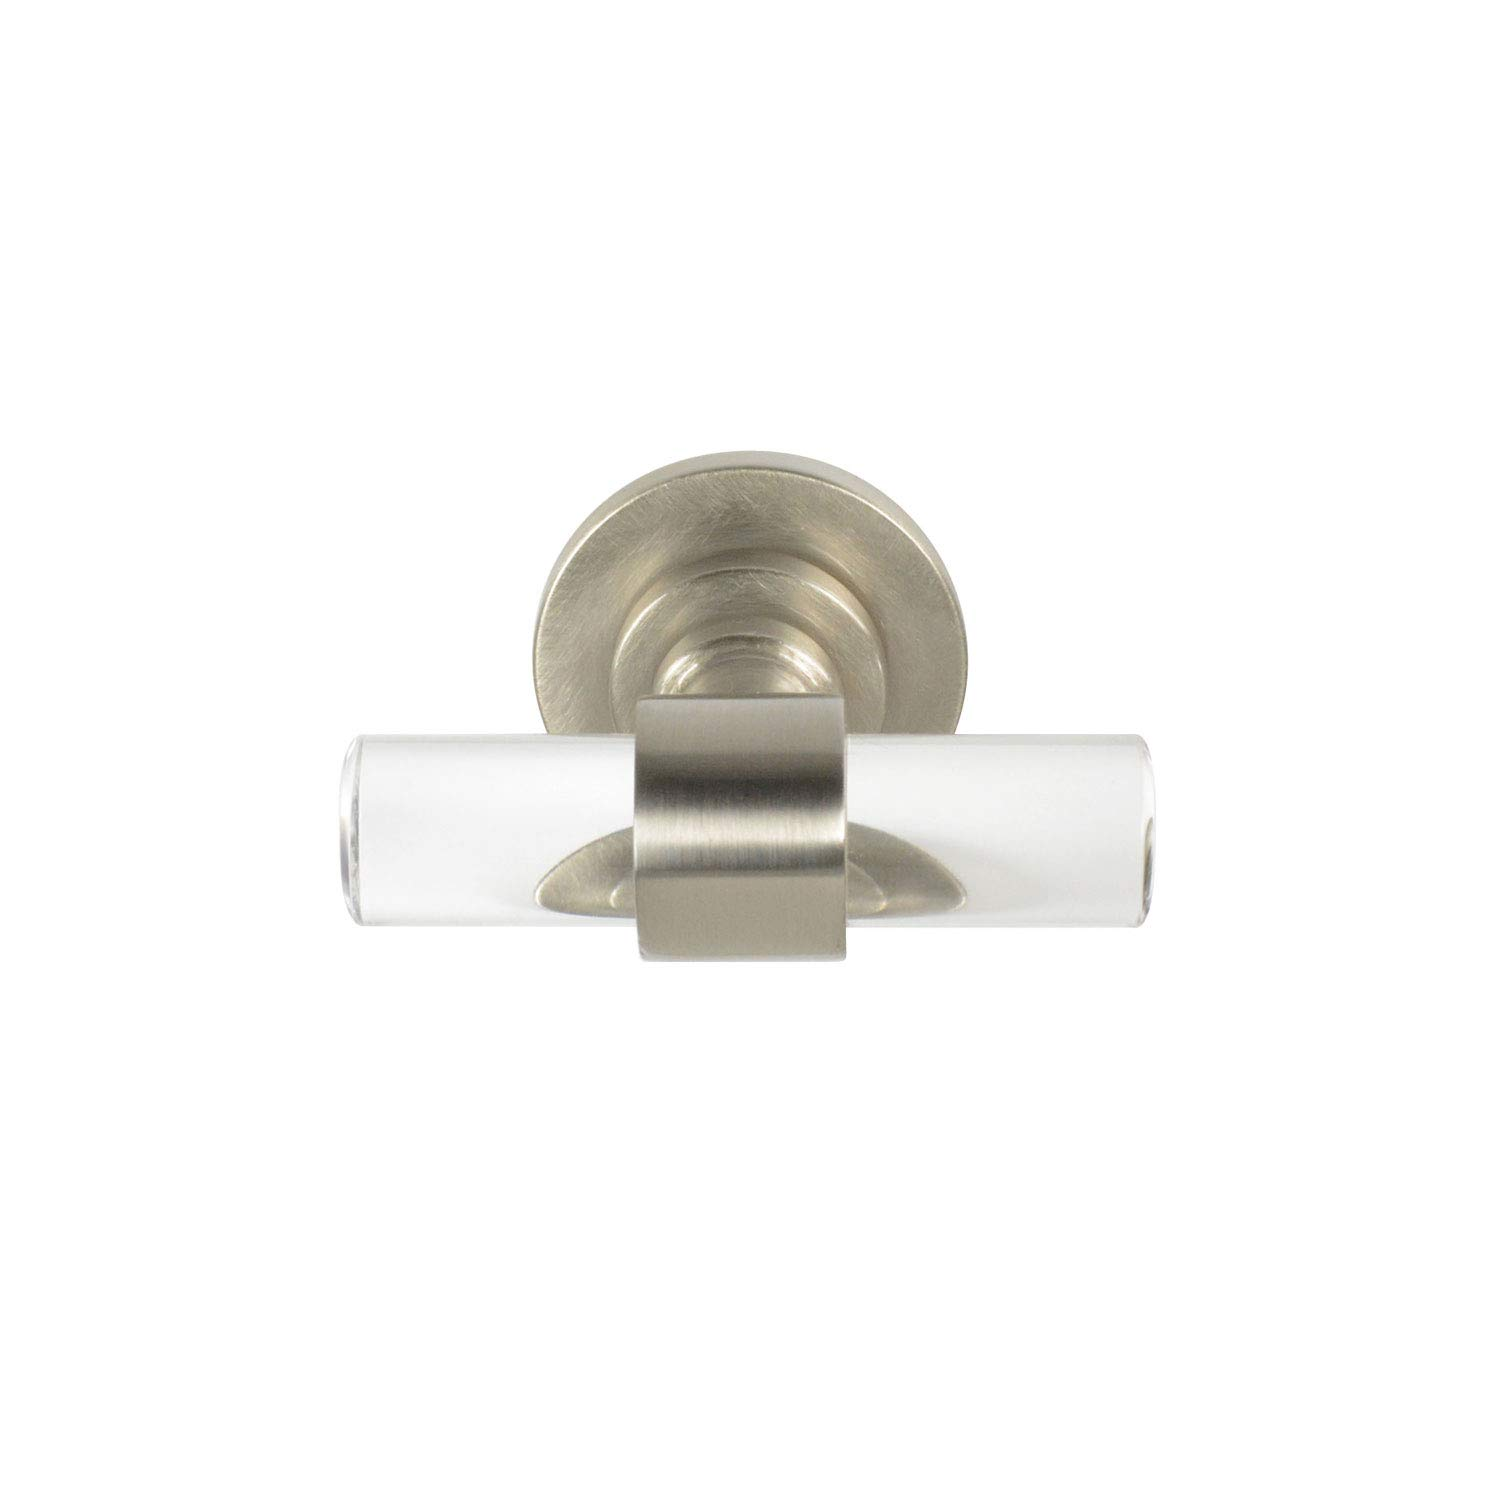 CKP Brand #750 Charlotte Collection T-Knob, Brushed Nickel/Clear - 10 Pack by CKP (Image #2)